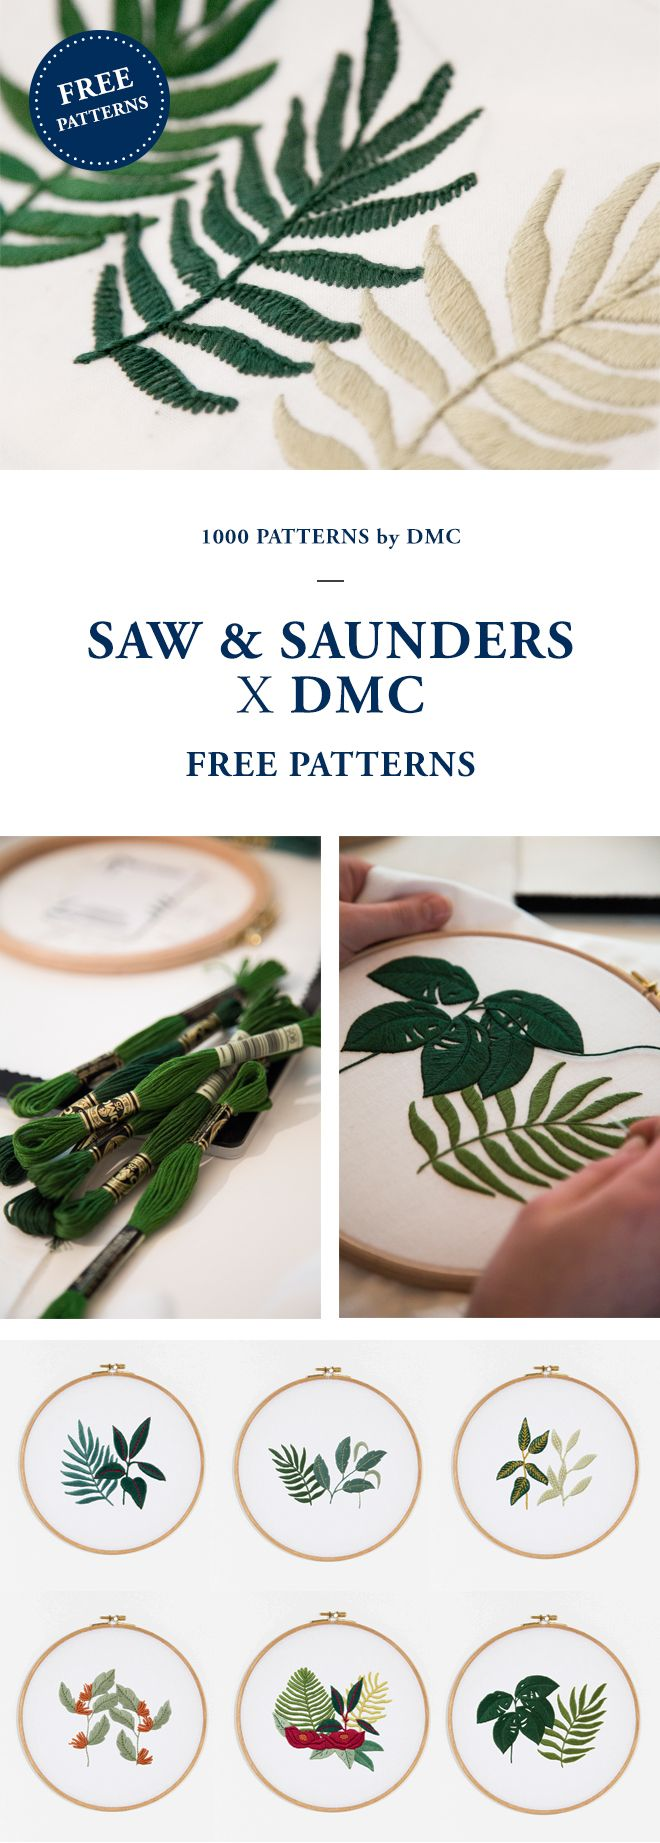 Free embroidery pattern from dmc cool crafts free pattern cool free embroidery pattern from dmc cool crafts free pattern dt1010fo